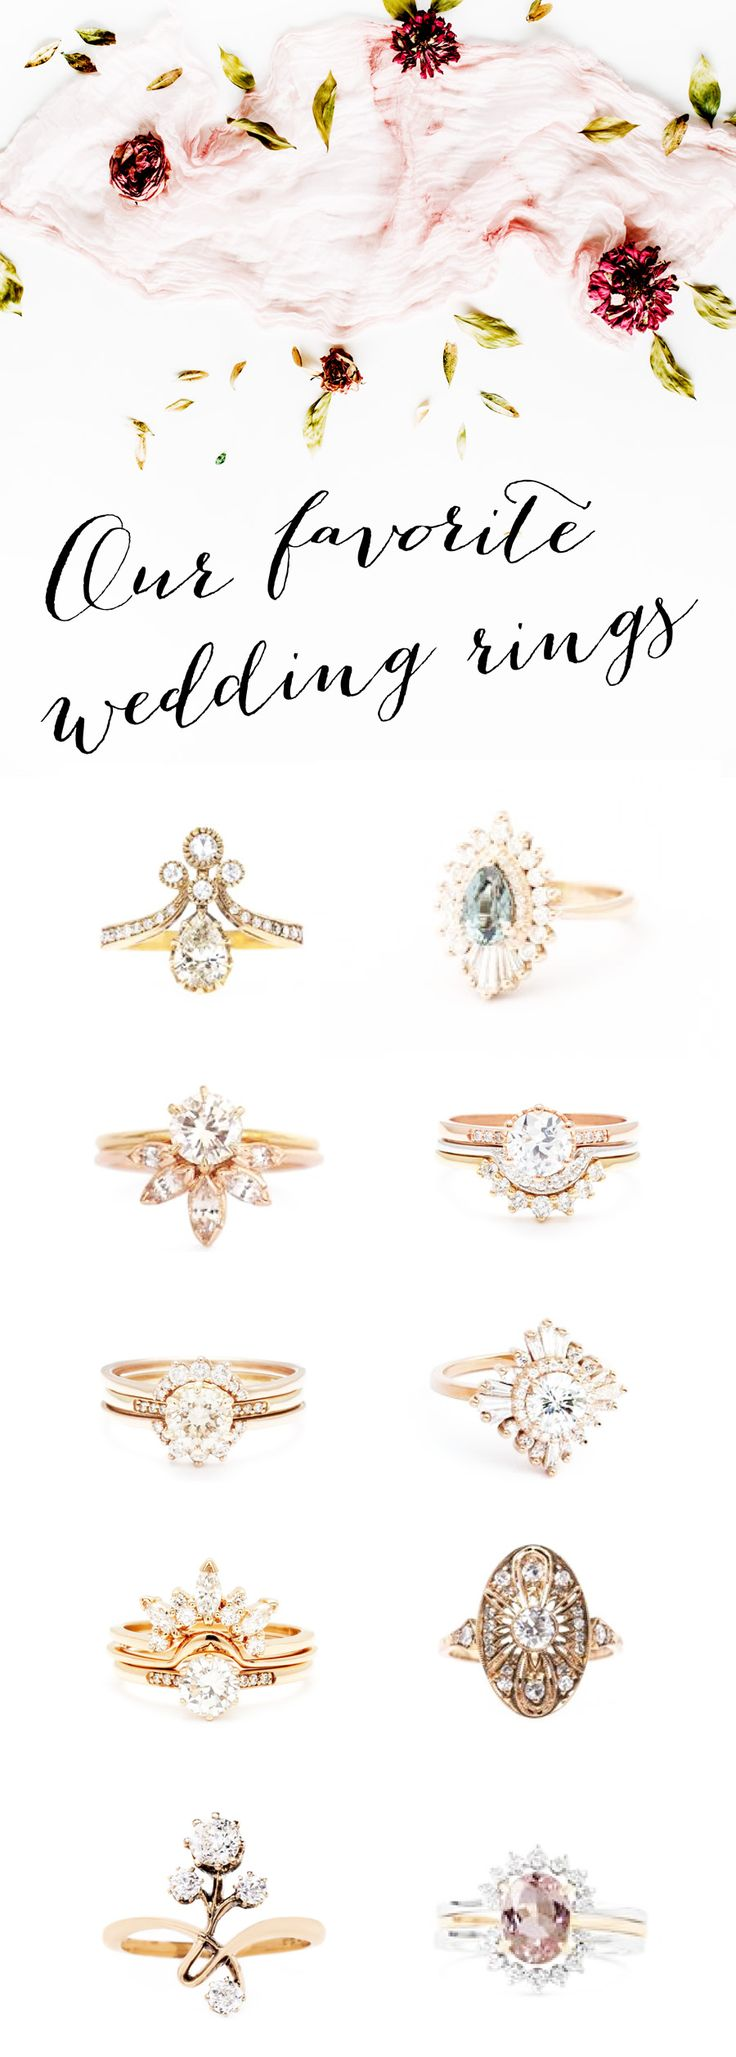 vintage wedding rings style buying jewellery different guide blog